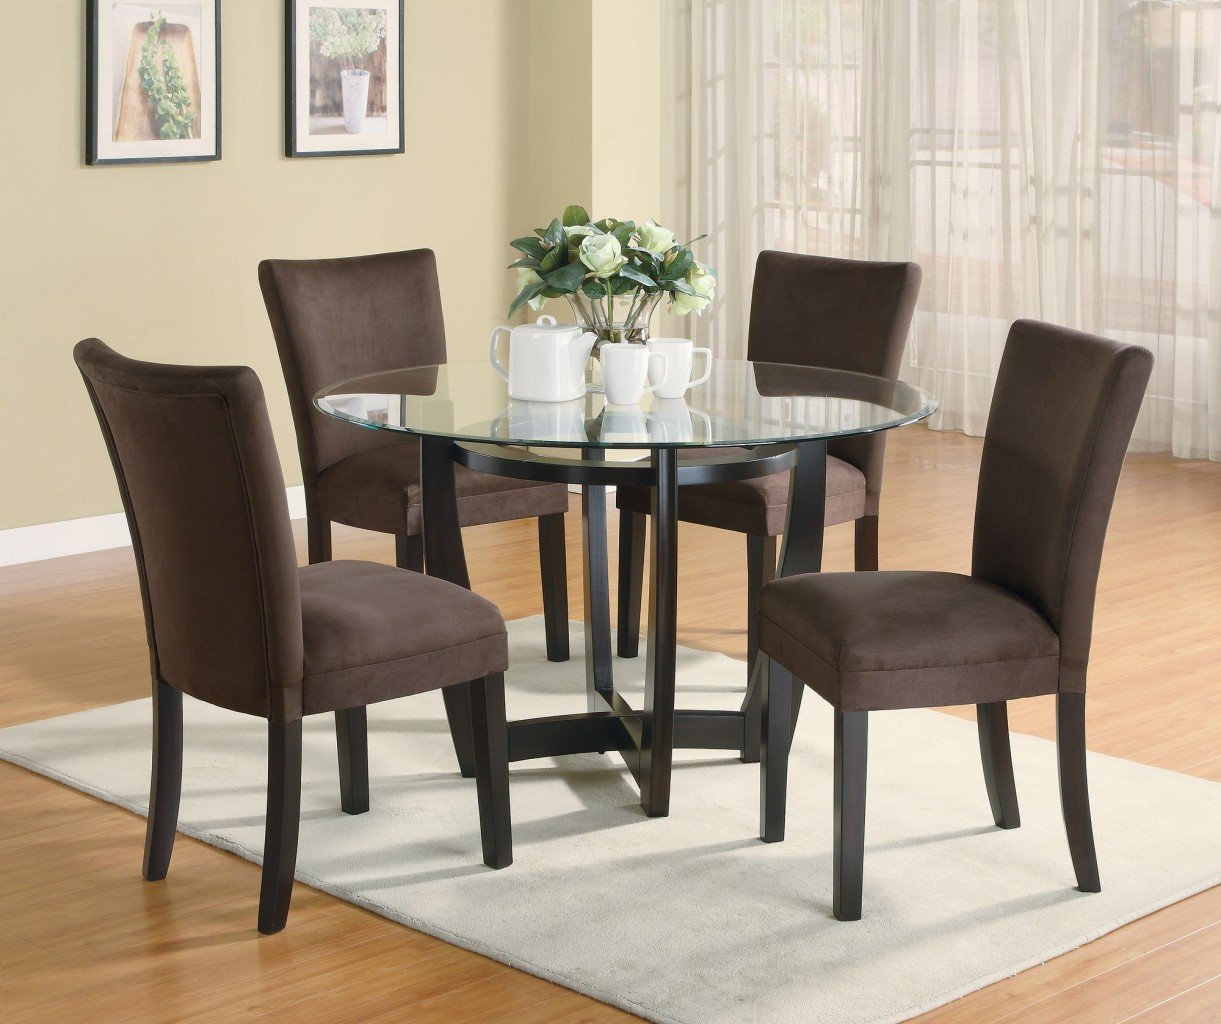 cheap dining room table sets home furniture design. Black Bedroom Furniture Sets. Home Design Ideas